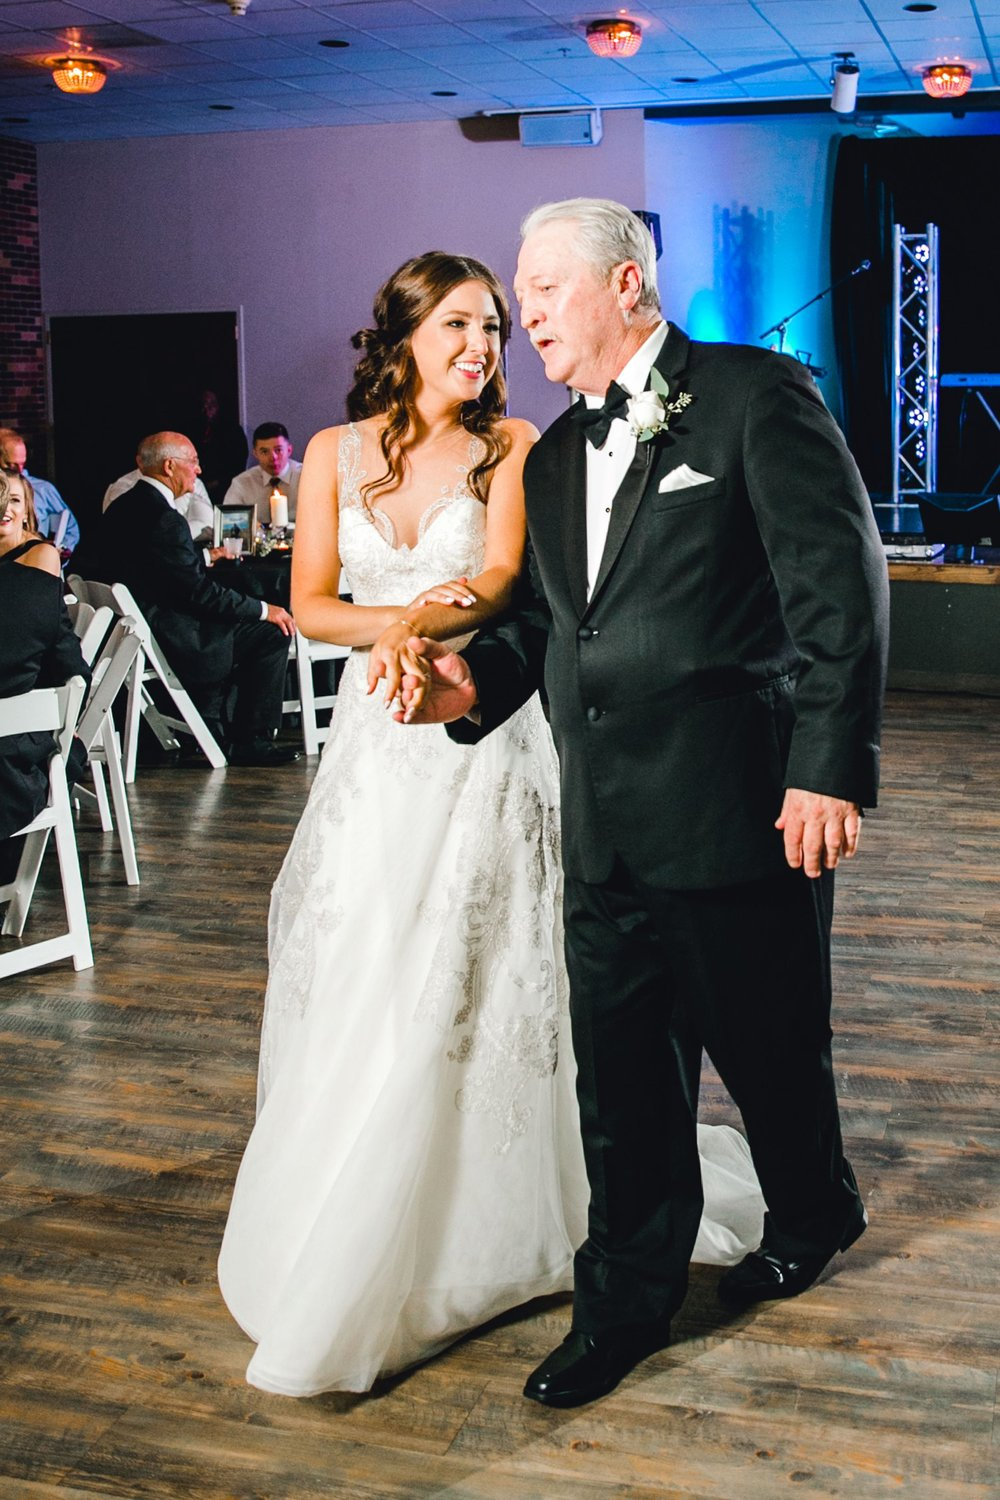 Hunter_and_Molly_Rawls_ALLEEJ_Lubbock_WEDDING_Legacy_Event_Center_0168.jpg